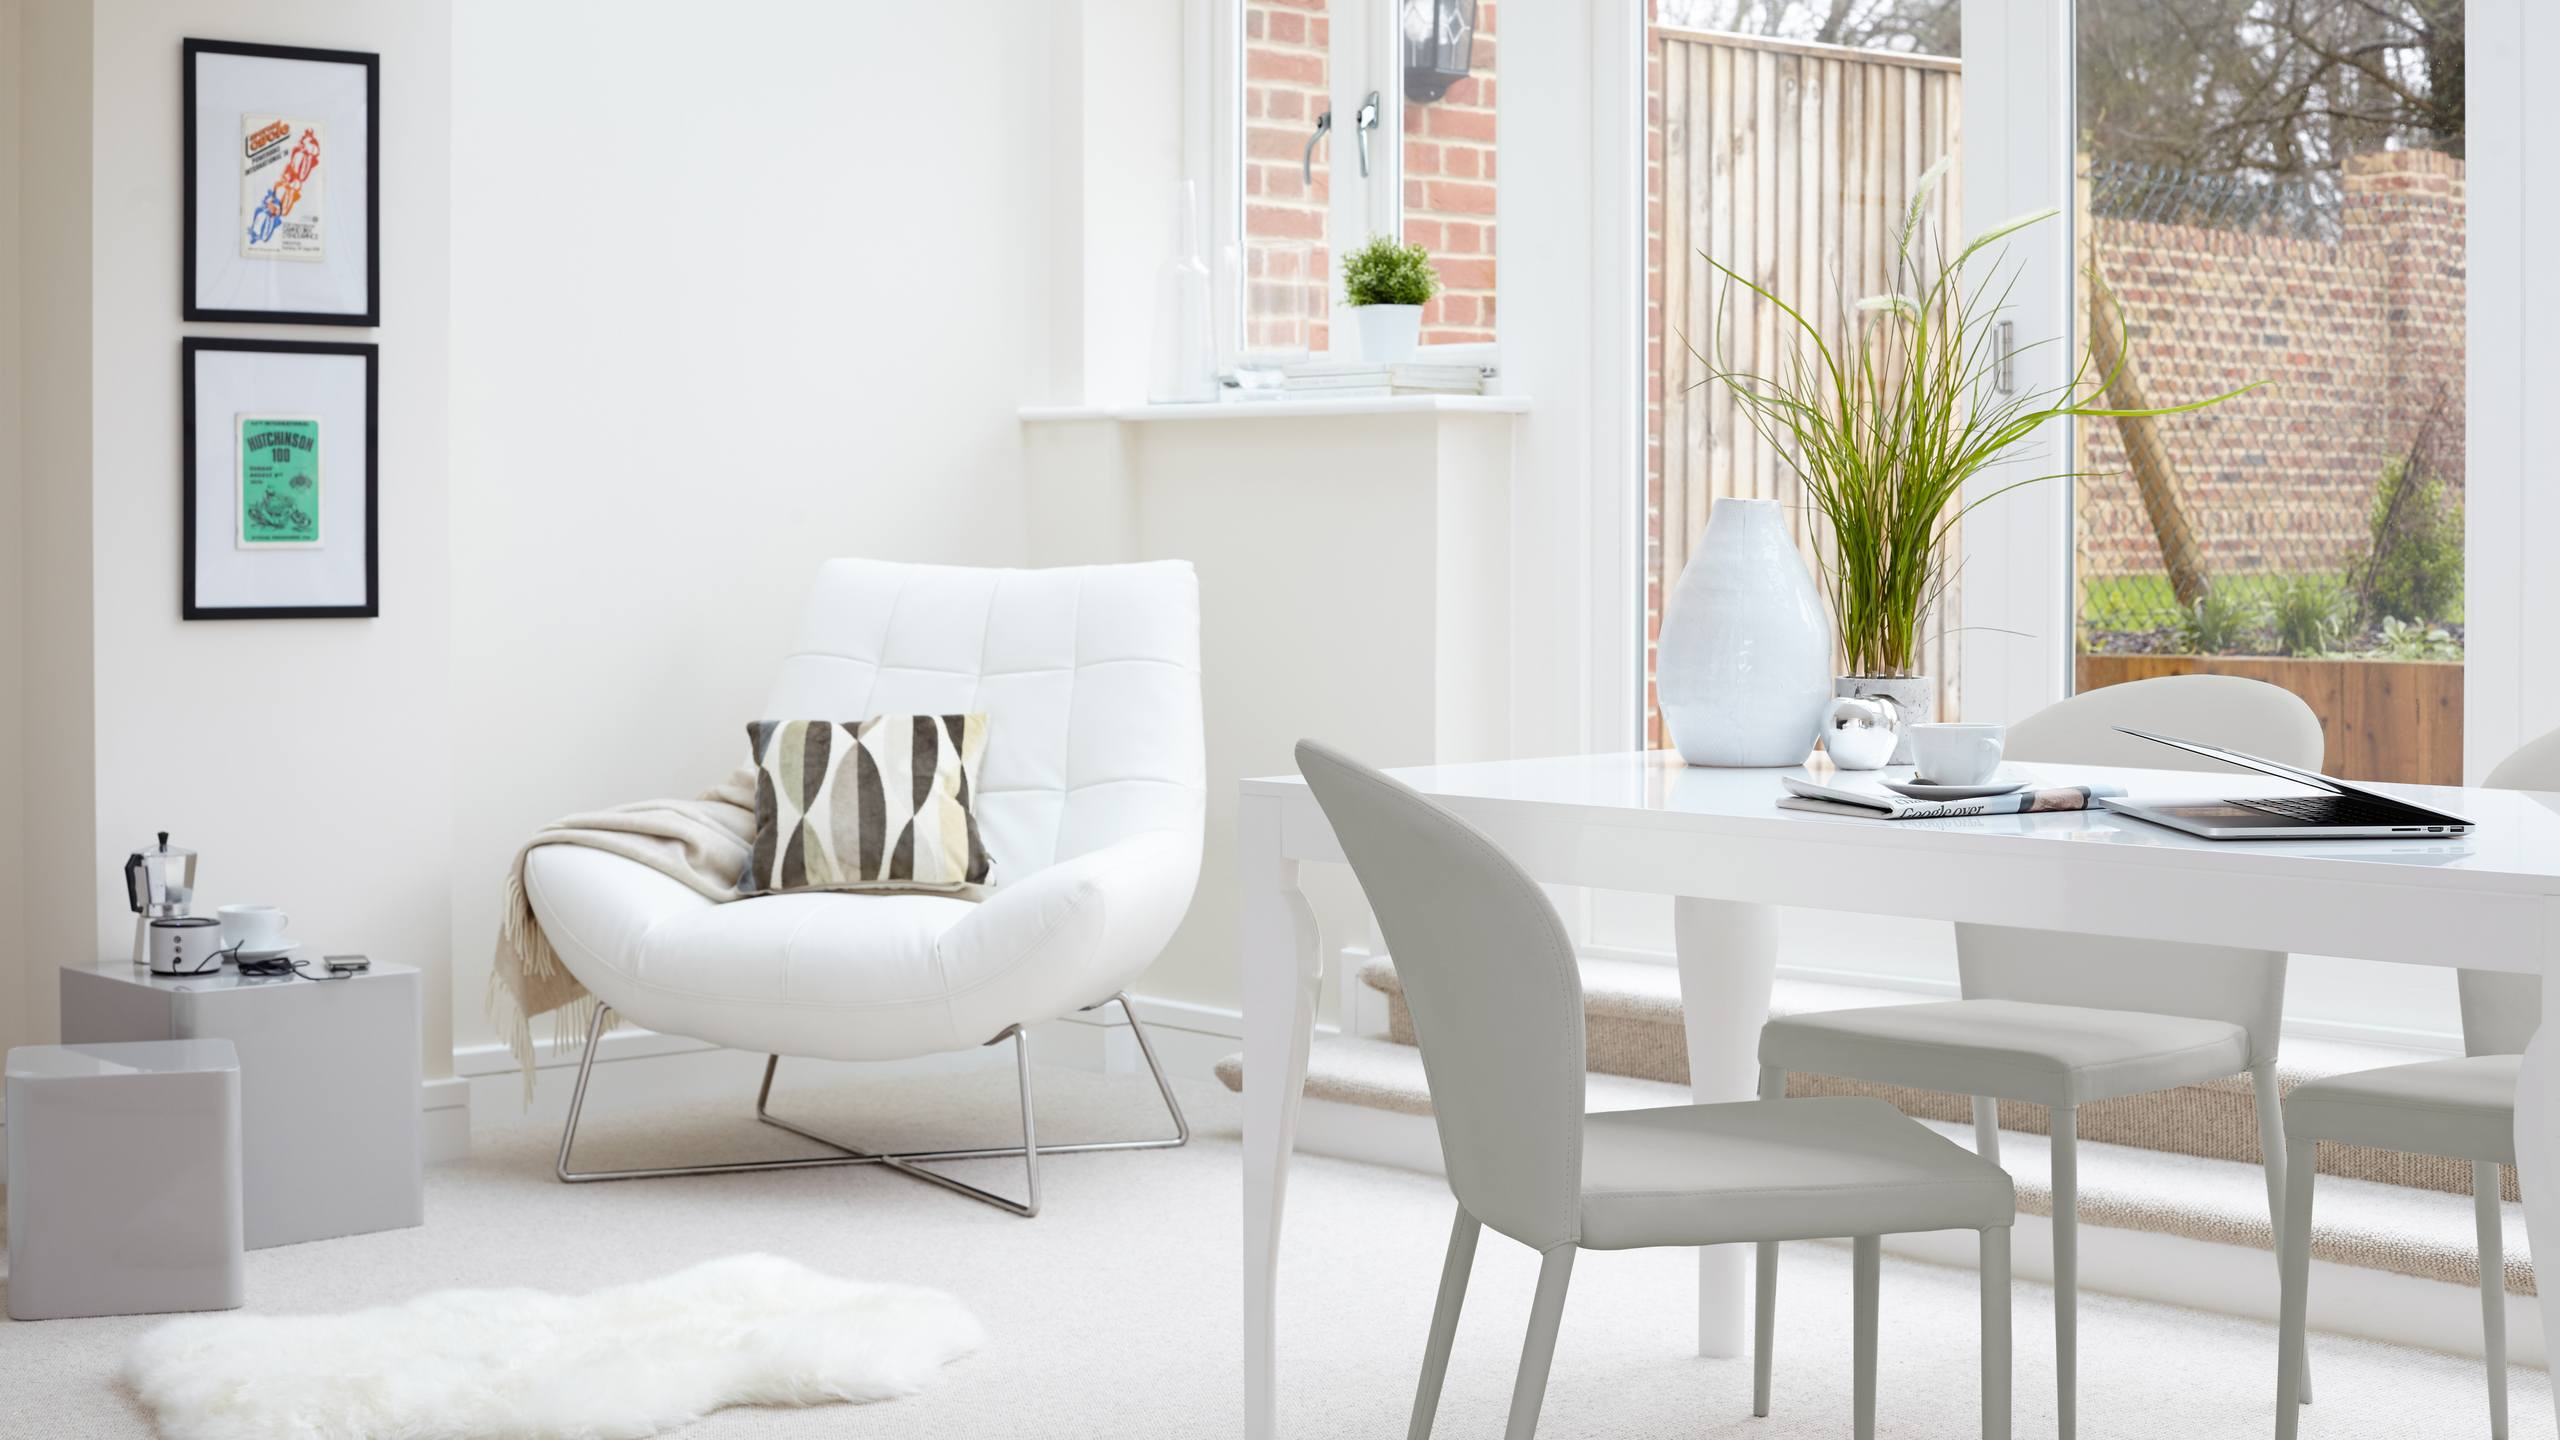 Having an open plan space means you can zone a variety of different areas. For example, here we have a living and dining combo that looks light, modern and still wonderfully spacious. Products: Canio Occasional Chair, Dice Side Tables in grey and Santo Stackable Dining Chairs.